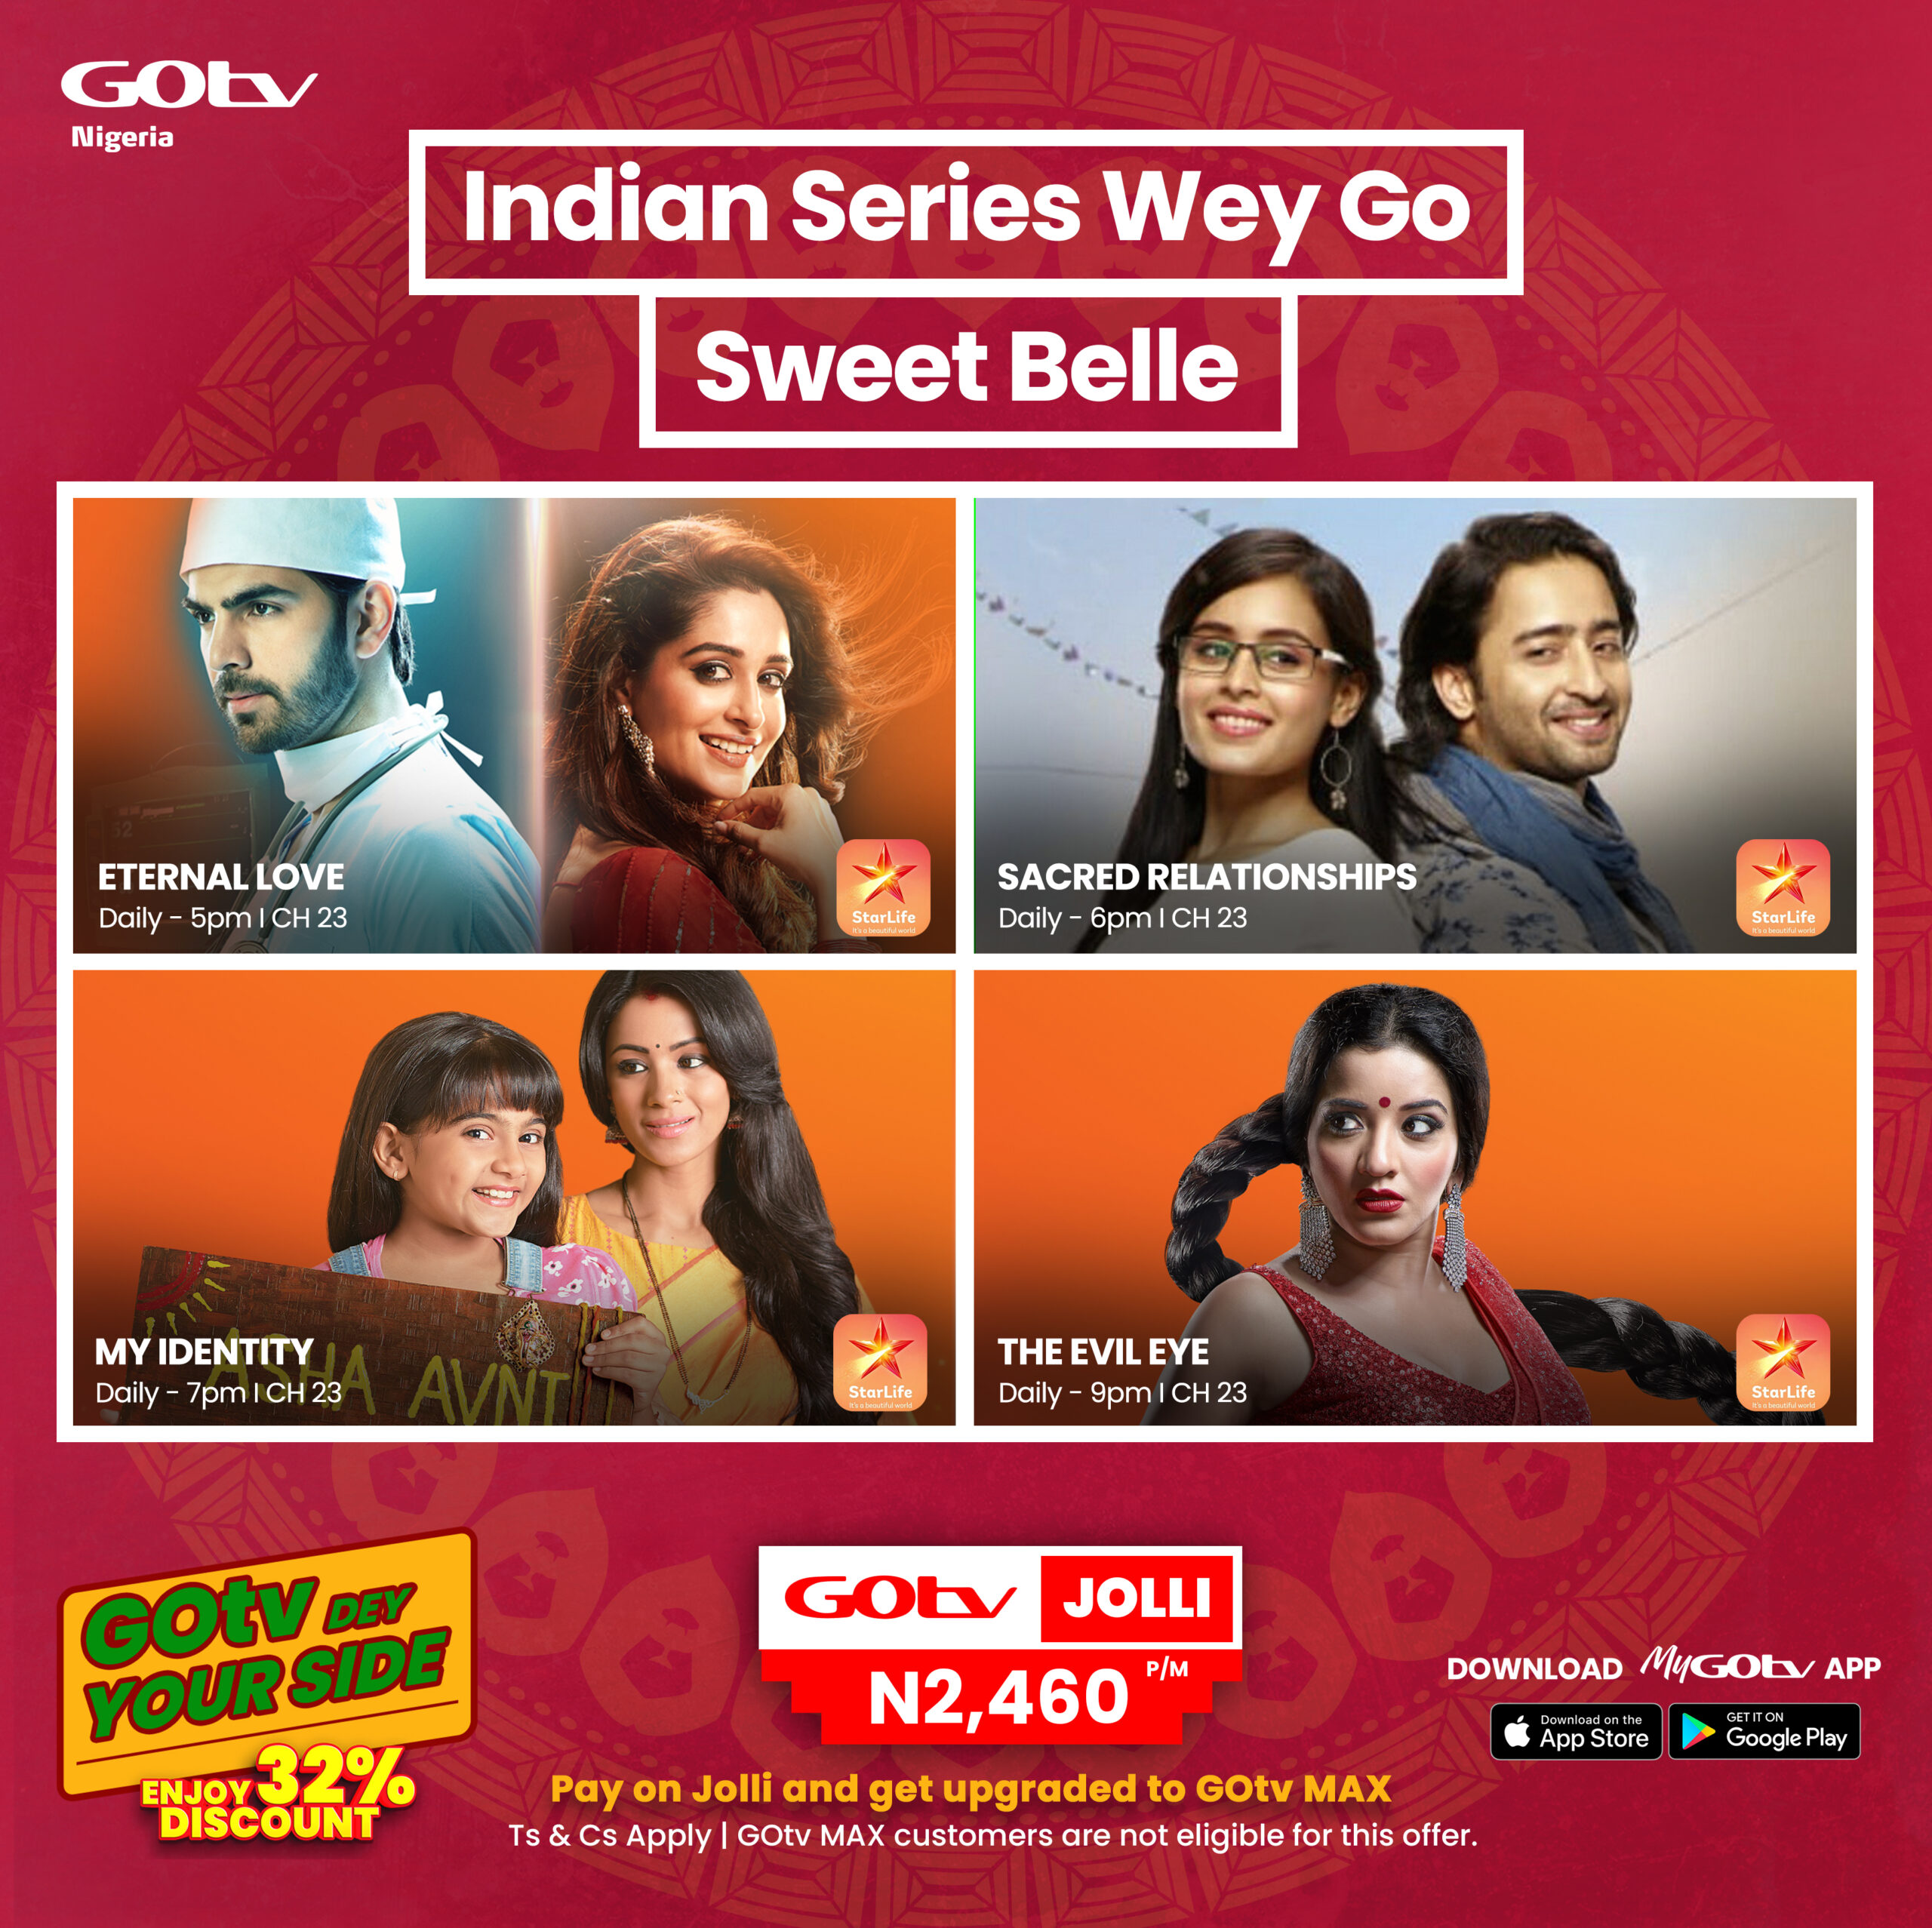 Catch The Best Bollywood Movies and Series on GOtv Max!